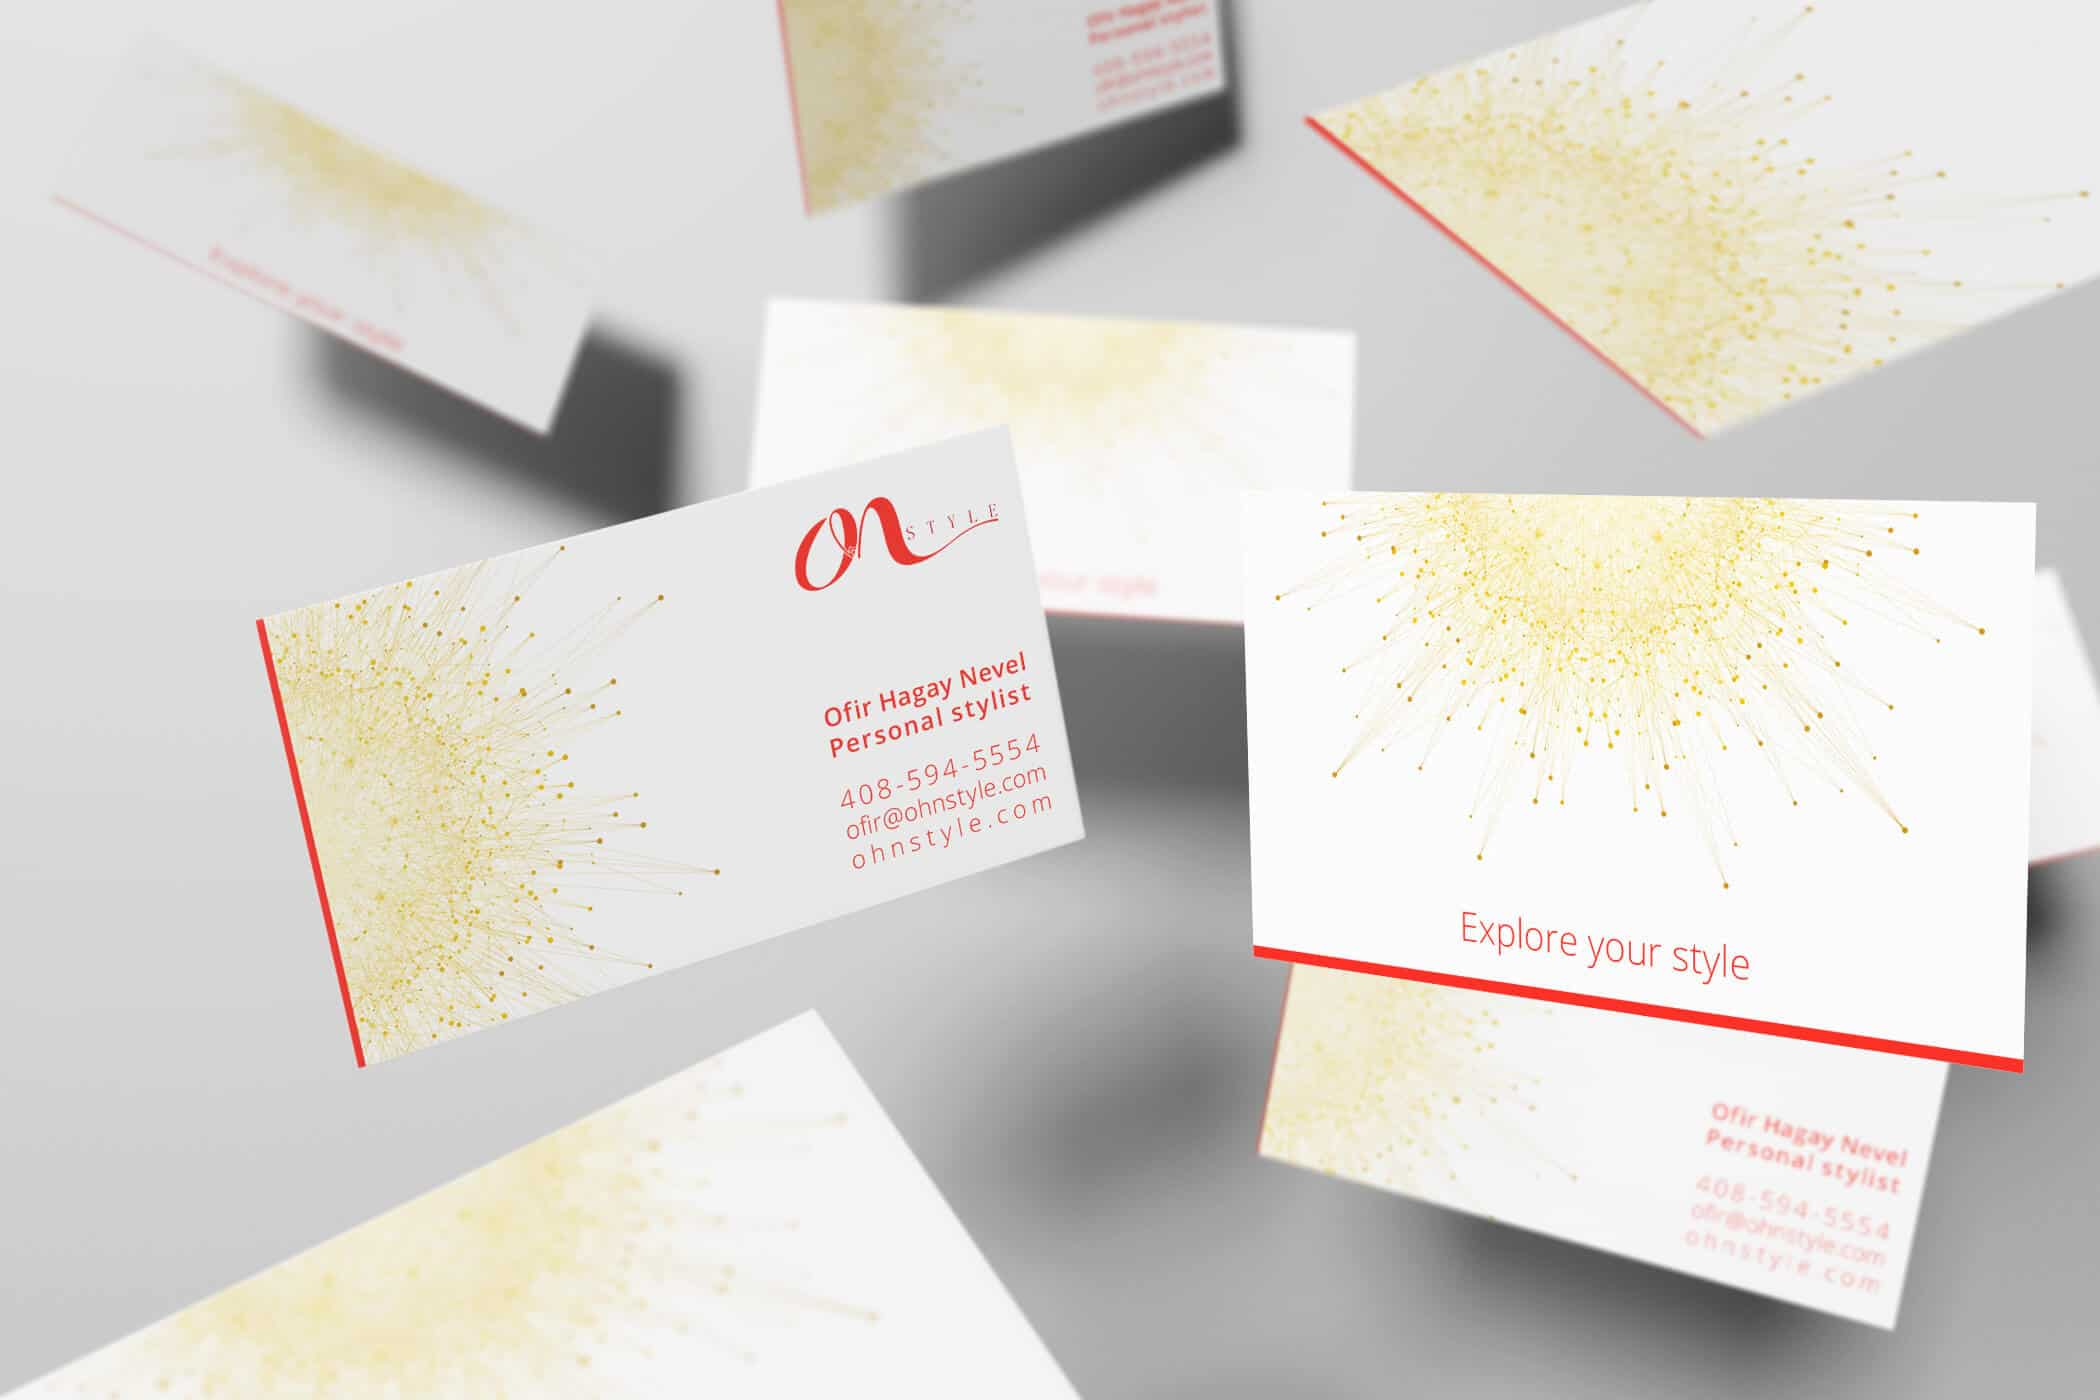 OhN STYLE - Personal Stylist - Business Card Design - Graphic Design ...